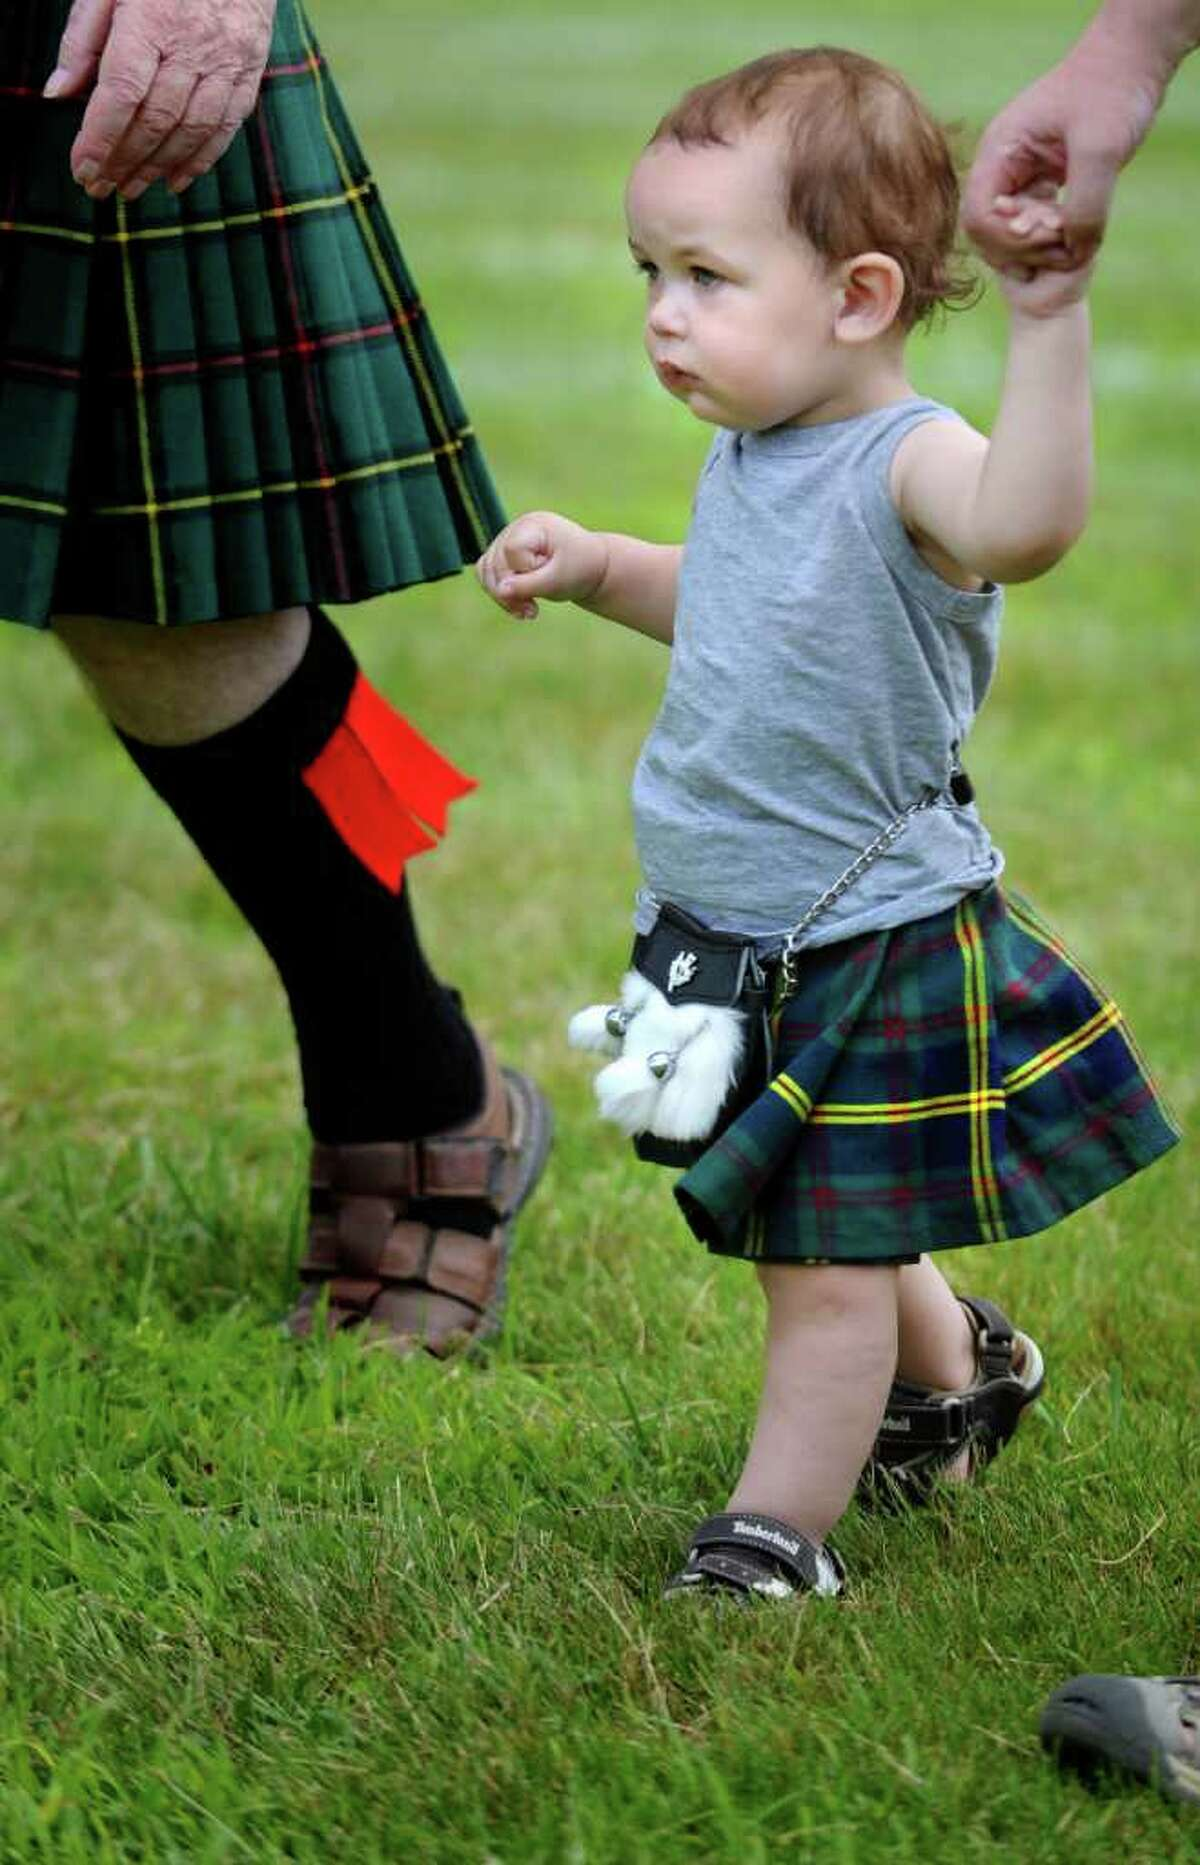 One-year-old Liam Mattice, of Trumbull, marches onto center field with clan Malcolm during opening ceremonies of the 88th Annual Round Hill Highland Games at Cranbury Park in Norwalk, Conn. Saturday, July 2, 2011.